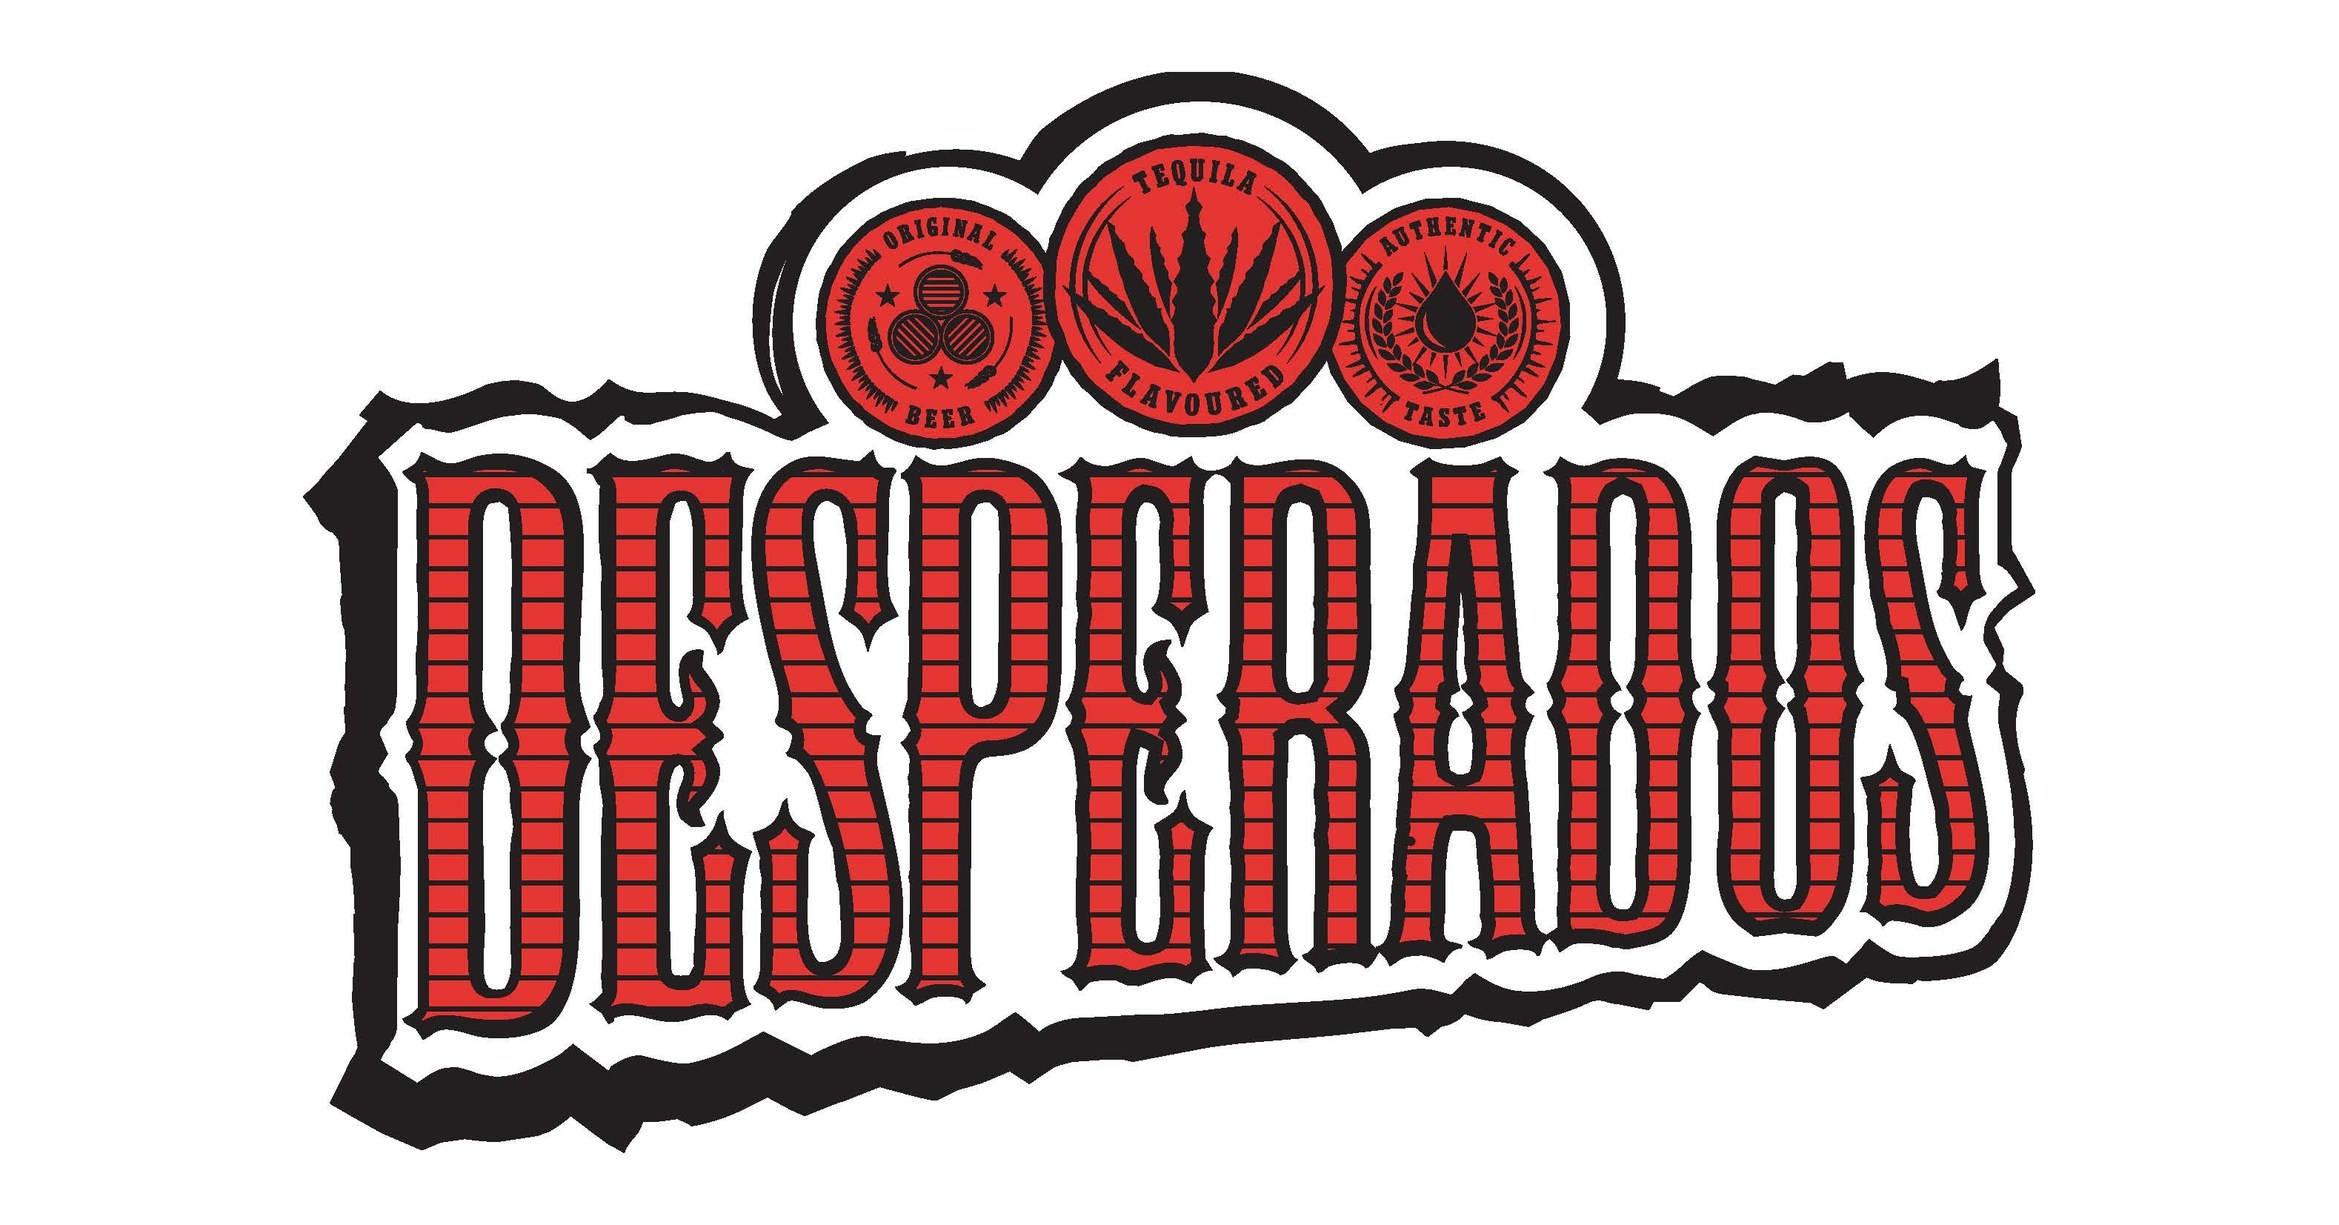 Desperados Welcomes Party Ideas from All Over the World for.